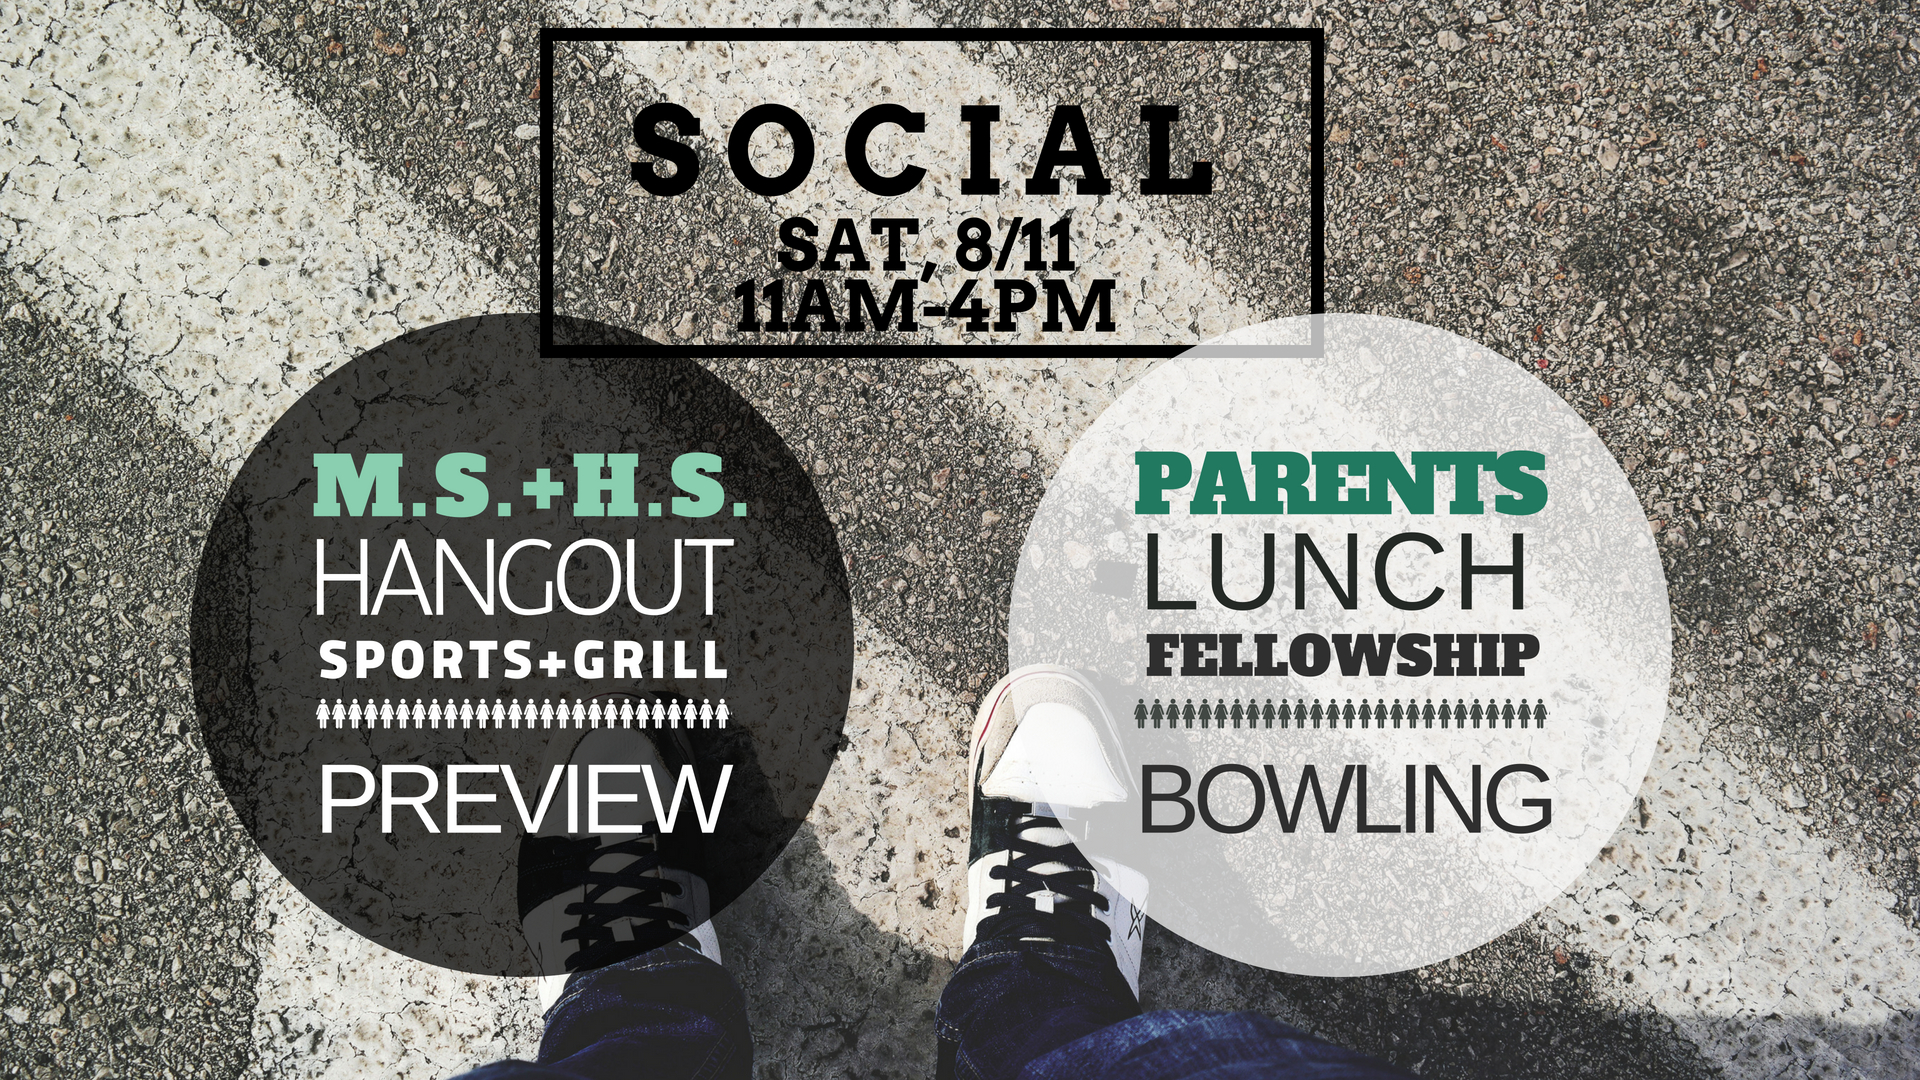 sign-up HERE - This is a fun, two-fold event coming up!Middle and High Schoolers come hang out together for a pool party, sports, grill and preview what's to come in Sunday School!Parents, drop off the kids and then go on your own outing including lunch in Fredericksburg and bowling. This is a great opportunity to get to know each other, discuss parenting a teen and just have fun together!When: Saturday, August 11th from 11am-4pmWhere: Stafford (carpool can be arranged)RSVP:Thursday, August 9th